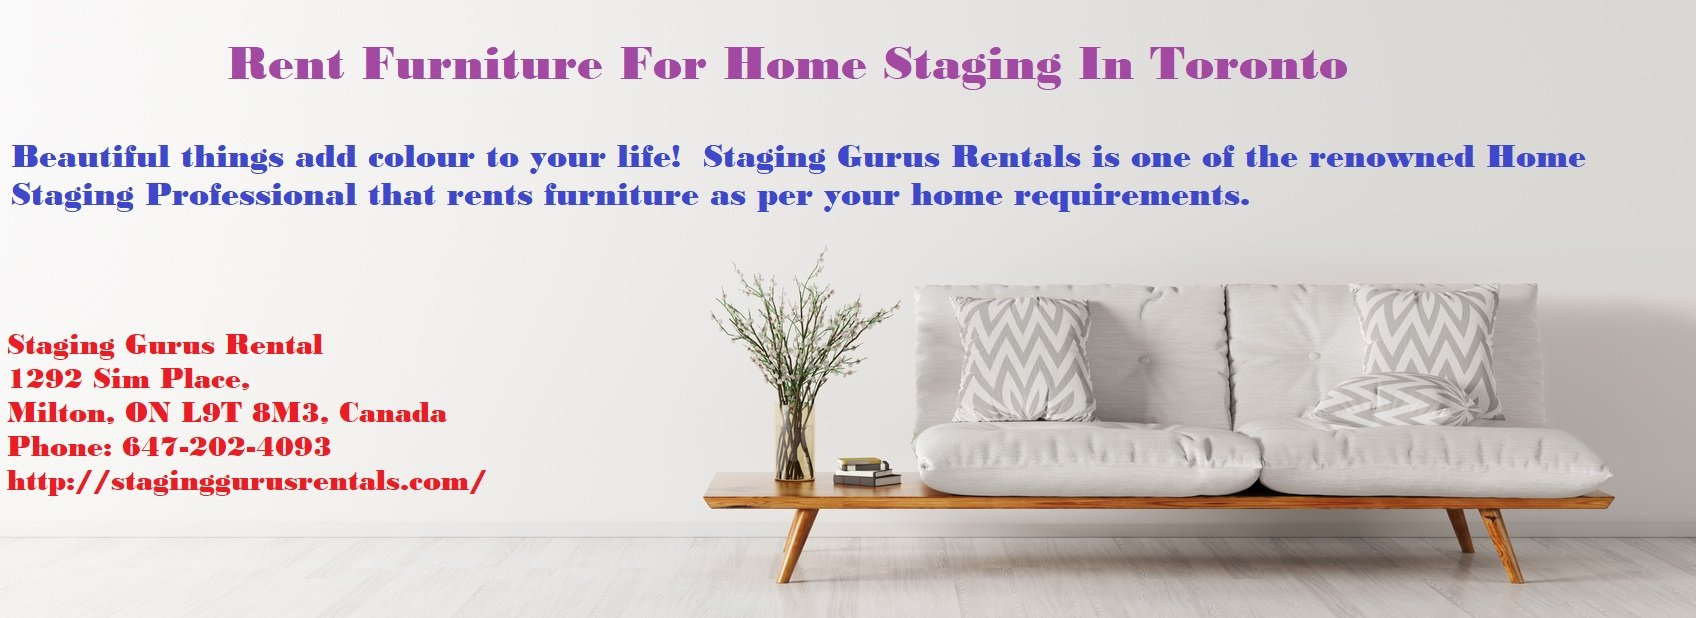 Rent Furniture For Home Staging In Toronto